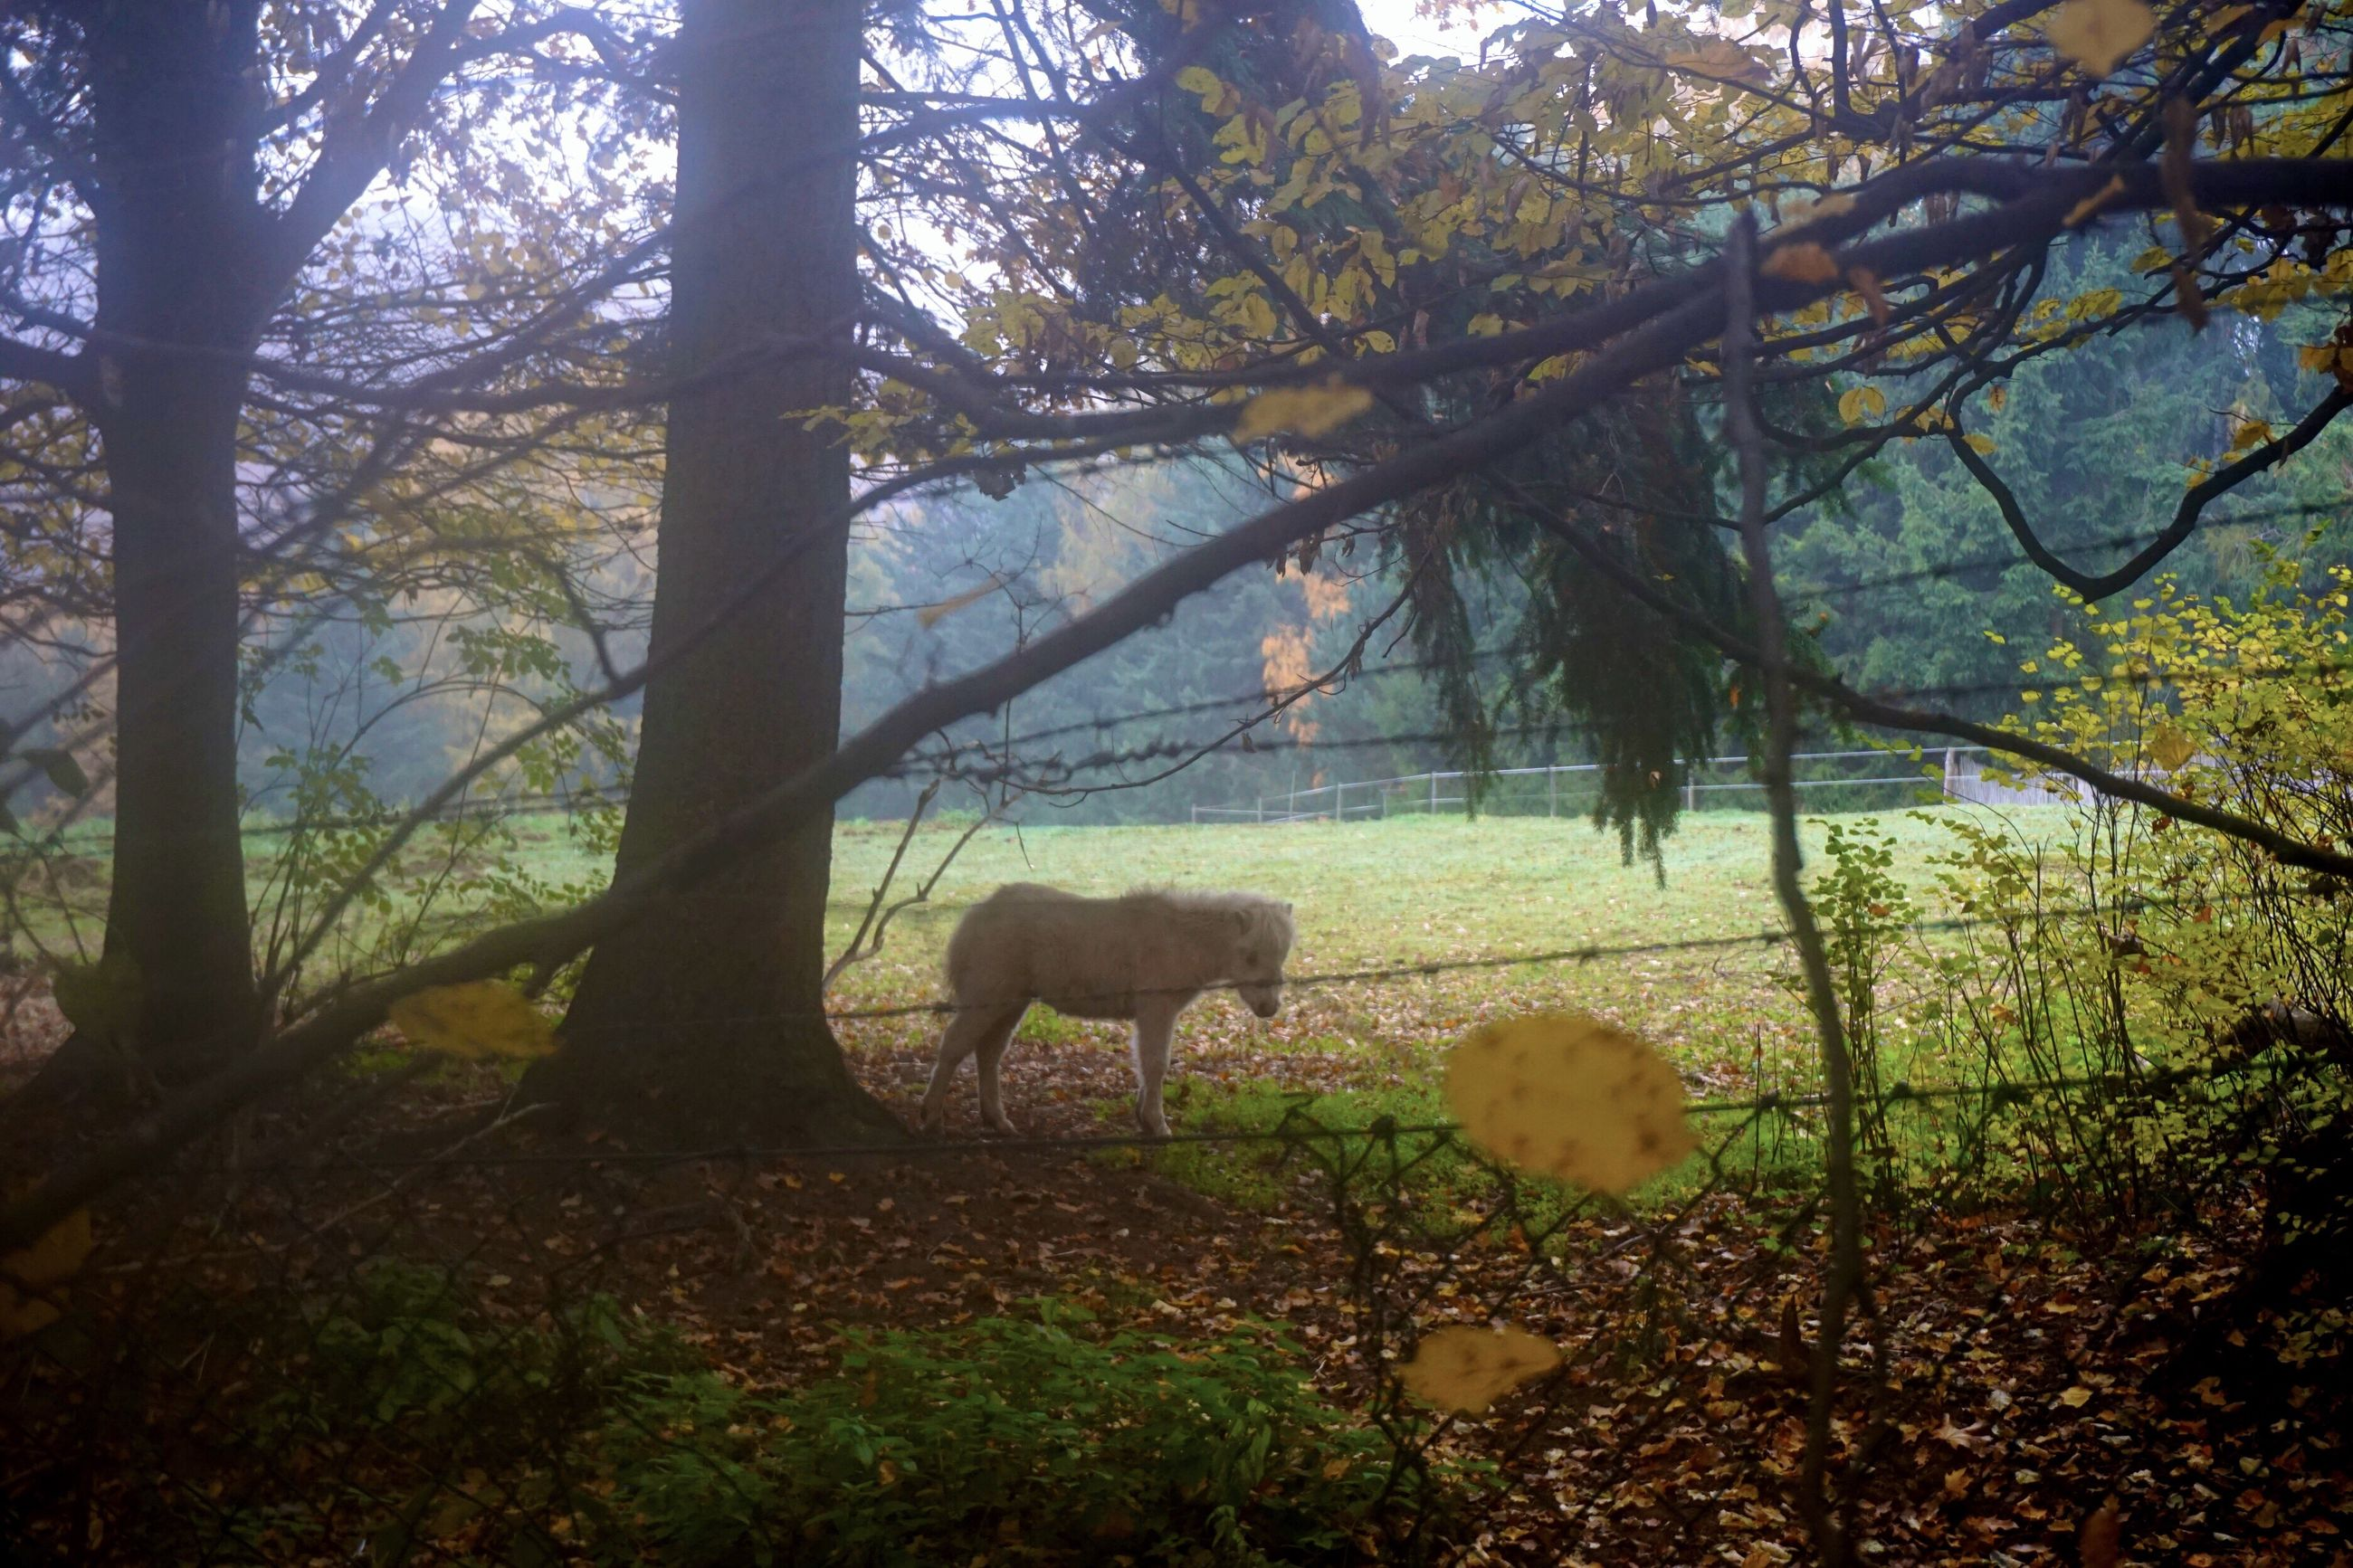 tree, animal themes, nature, no people, domestic animals, livestock, mammal, beauty in nature, day, outdoors, sky